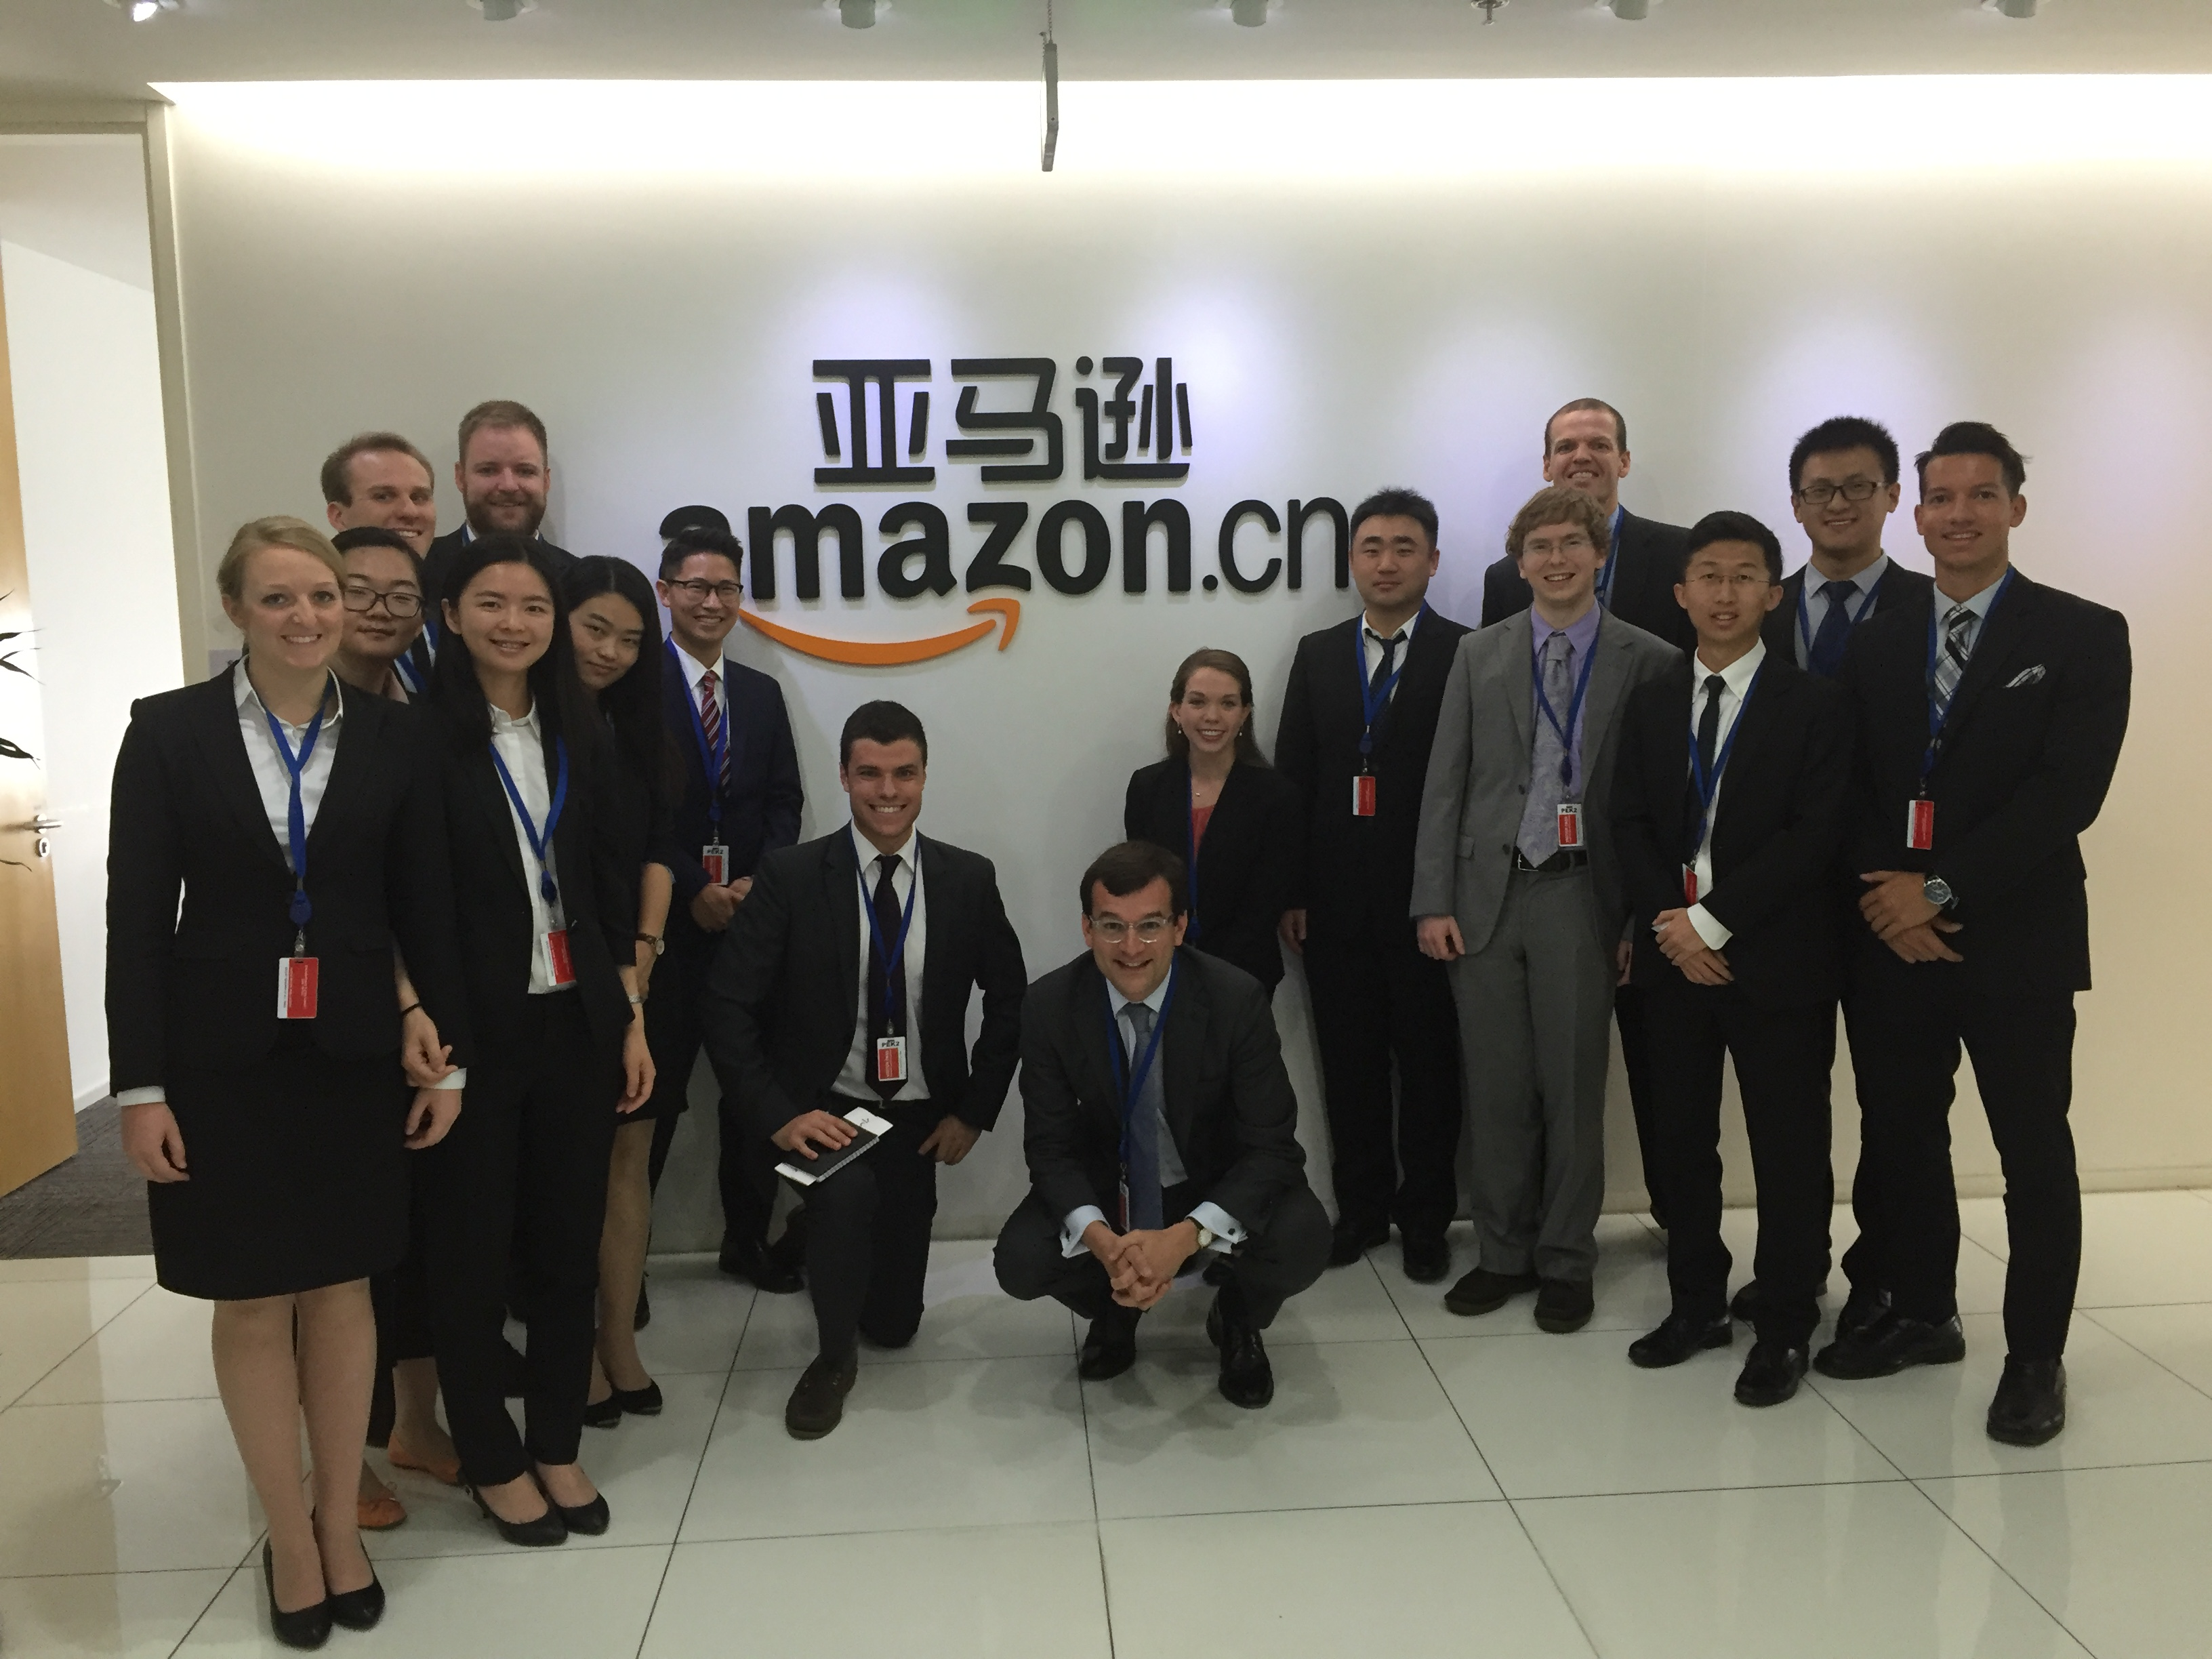 global careers sais students at amazon in beijing in 2016